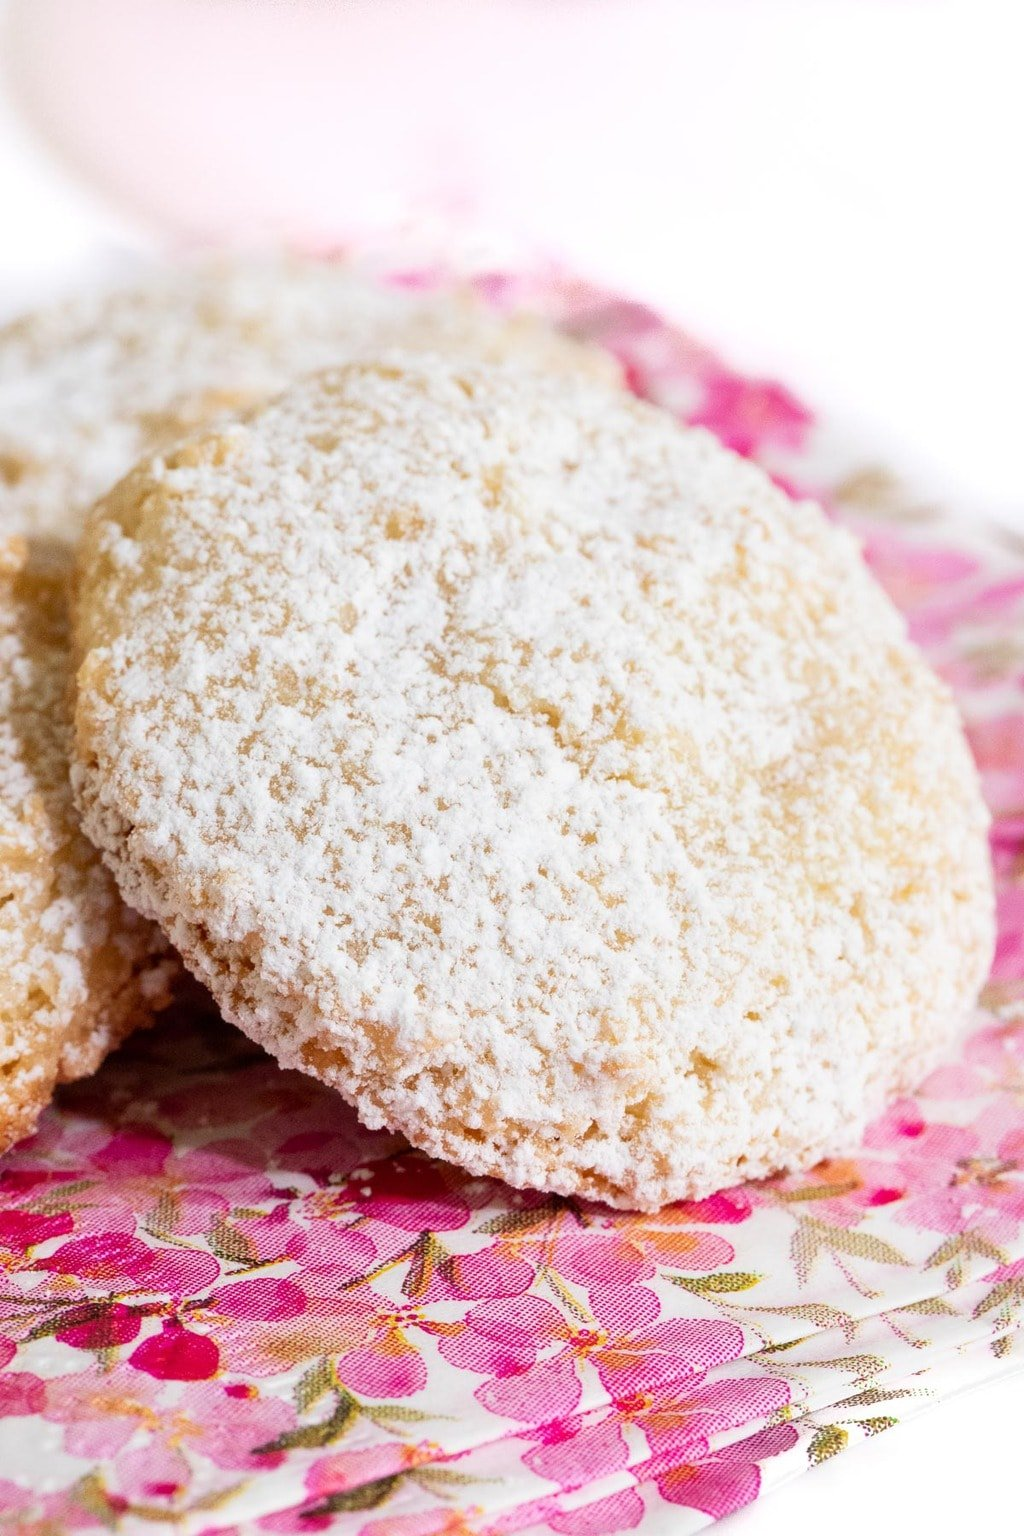 Vertical extreme closeup photo of a Ridiculously Easy French Almond Cookie covered in powdered sugar on a pink, white and gold napkin.